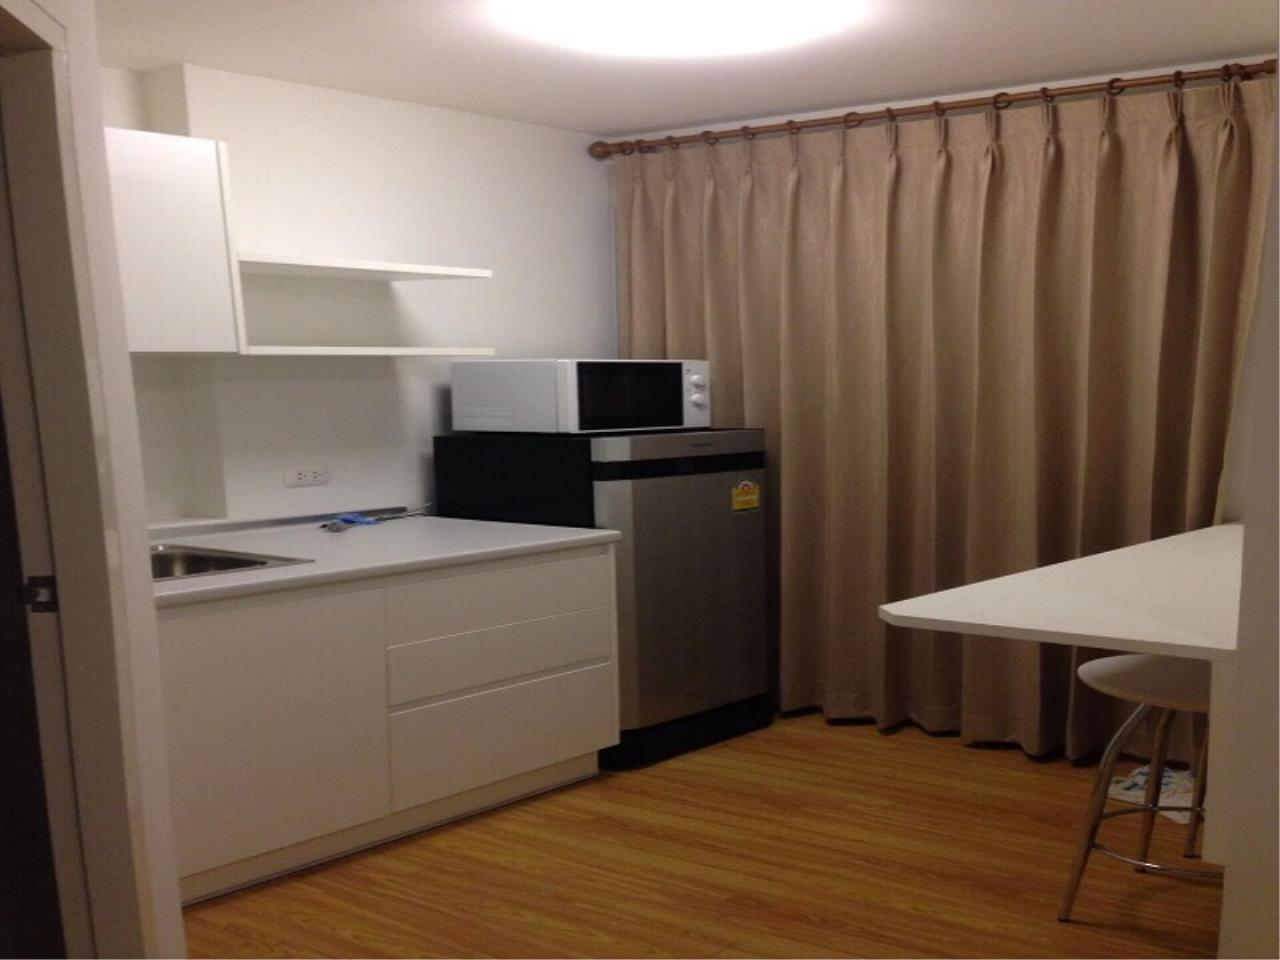 BKKcondorental Agency's Rent 1 bed 28 sq 10,000 B for the trust praram 3 4